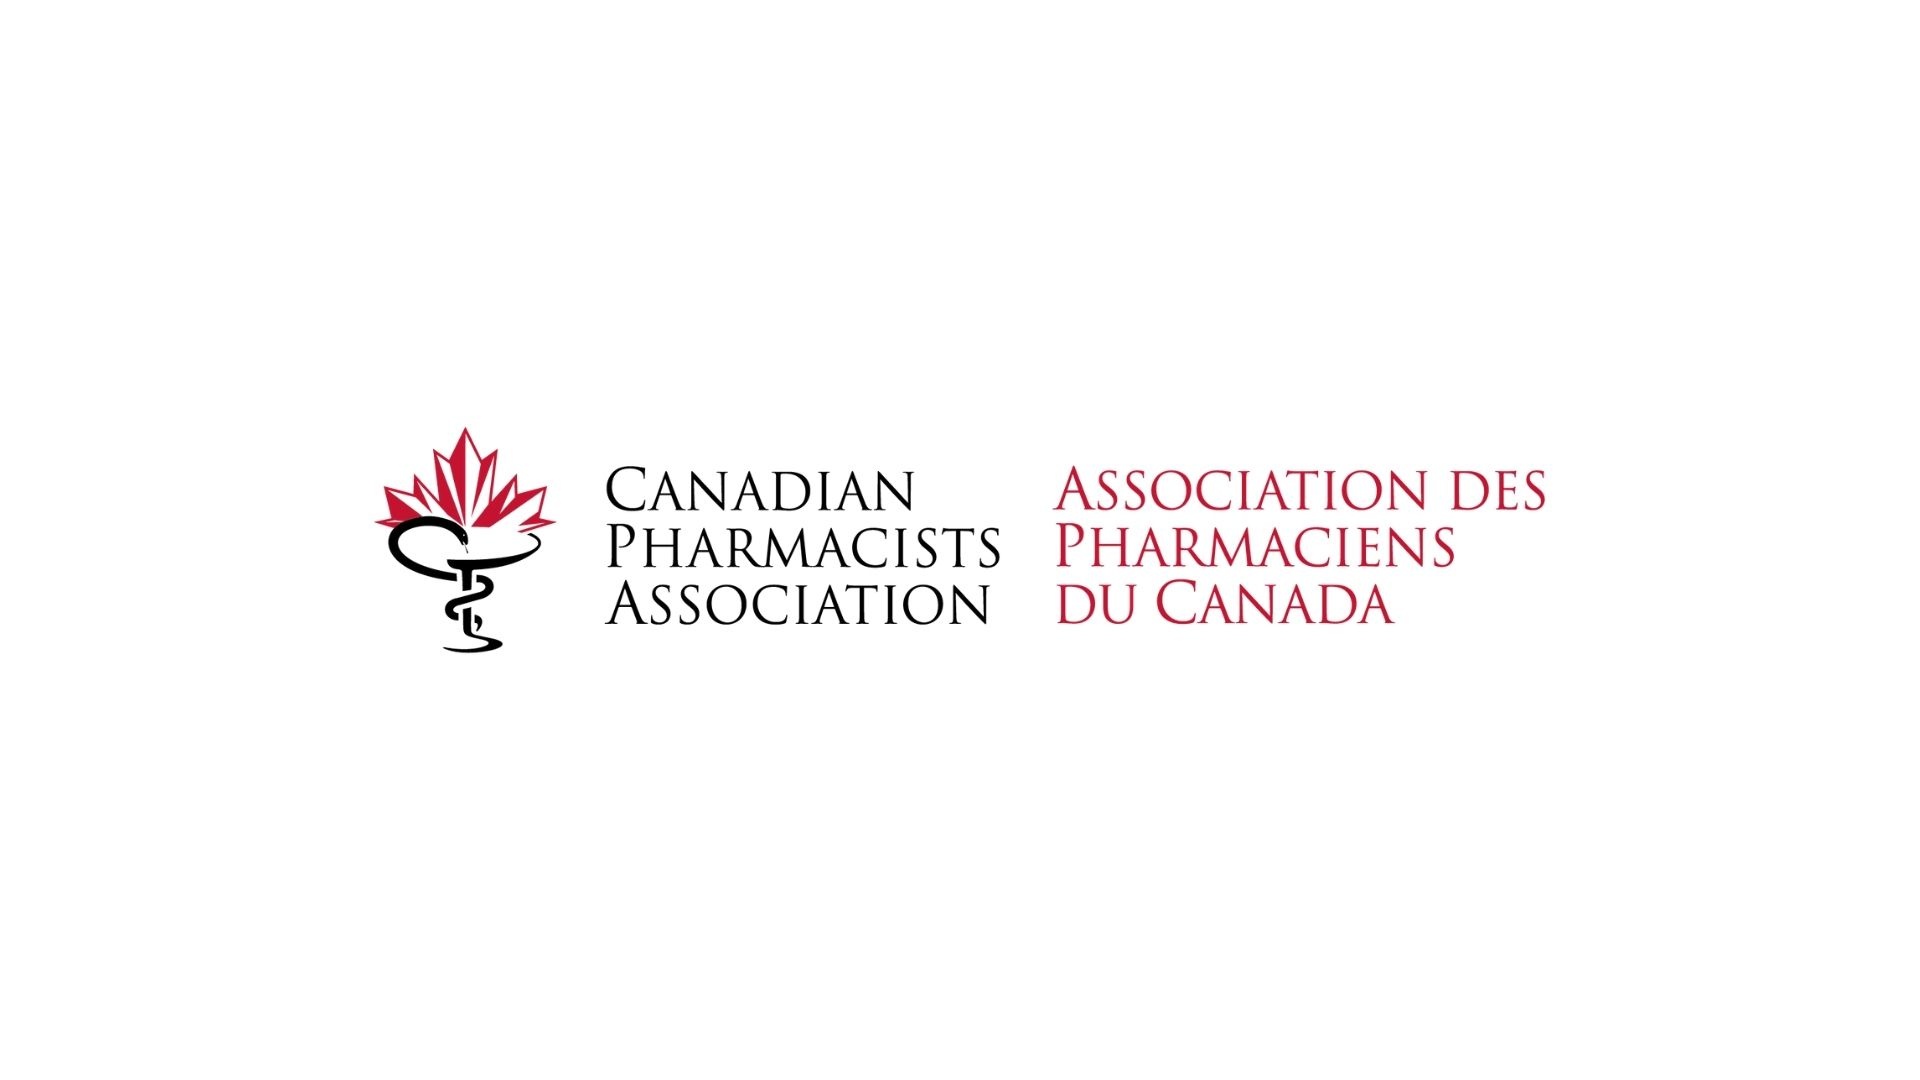 Canadian Pharmacists Association Benefits